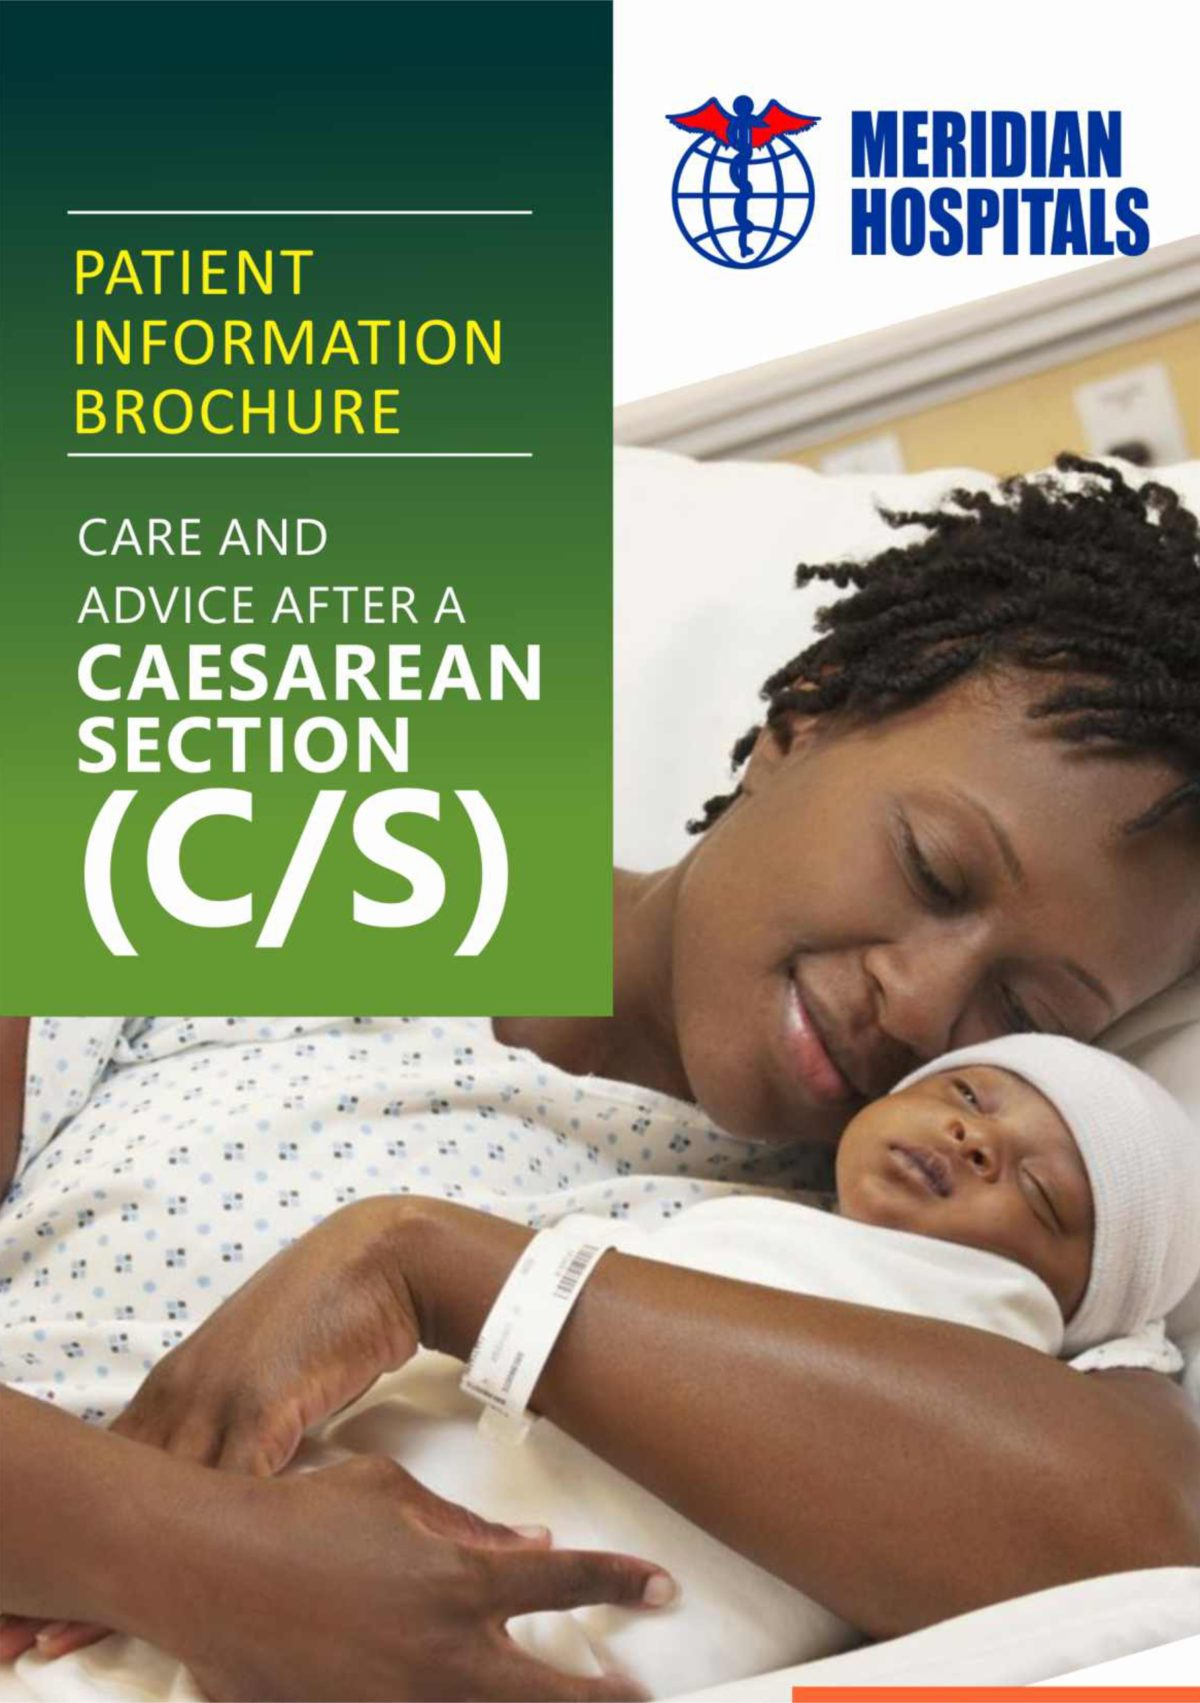 Patient-Information-Brochure-1200x1703.jpg